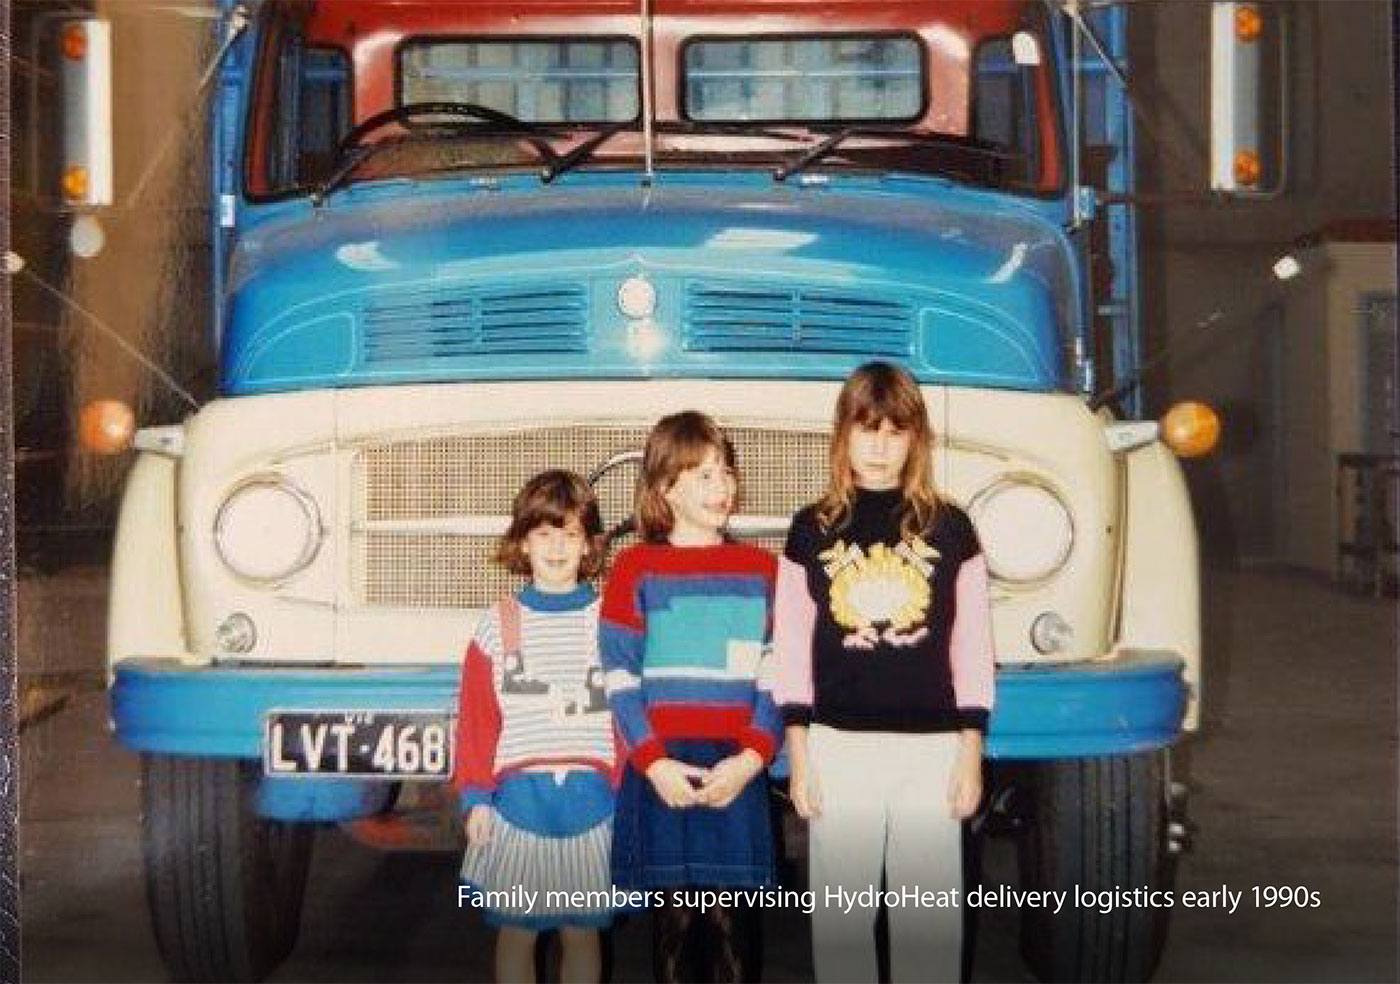 Family members supervising HydroHeat delivery logistics ealy 1990s